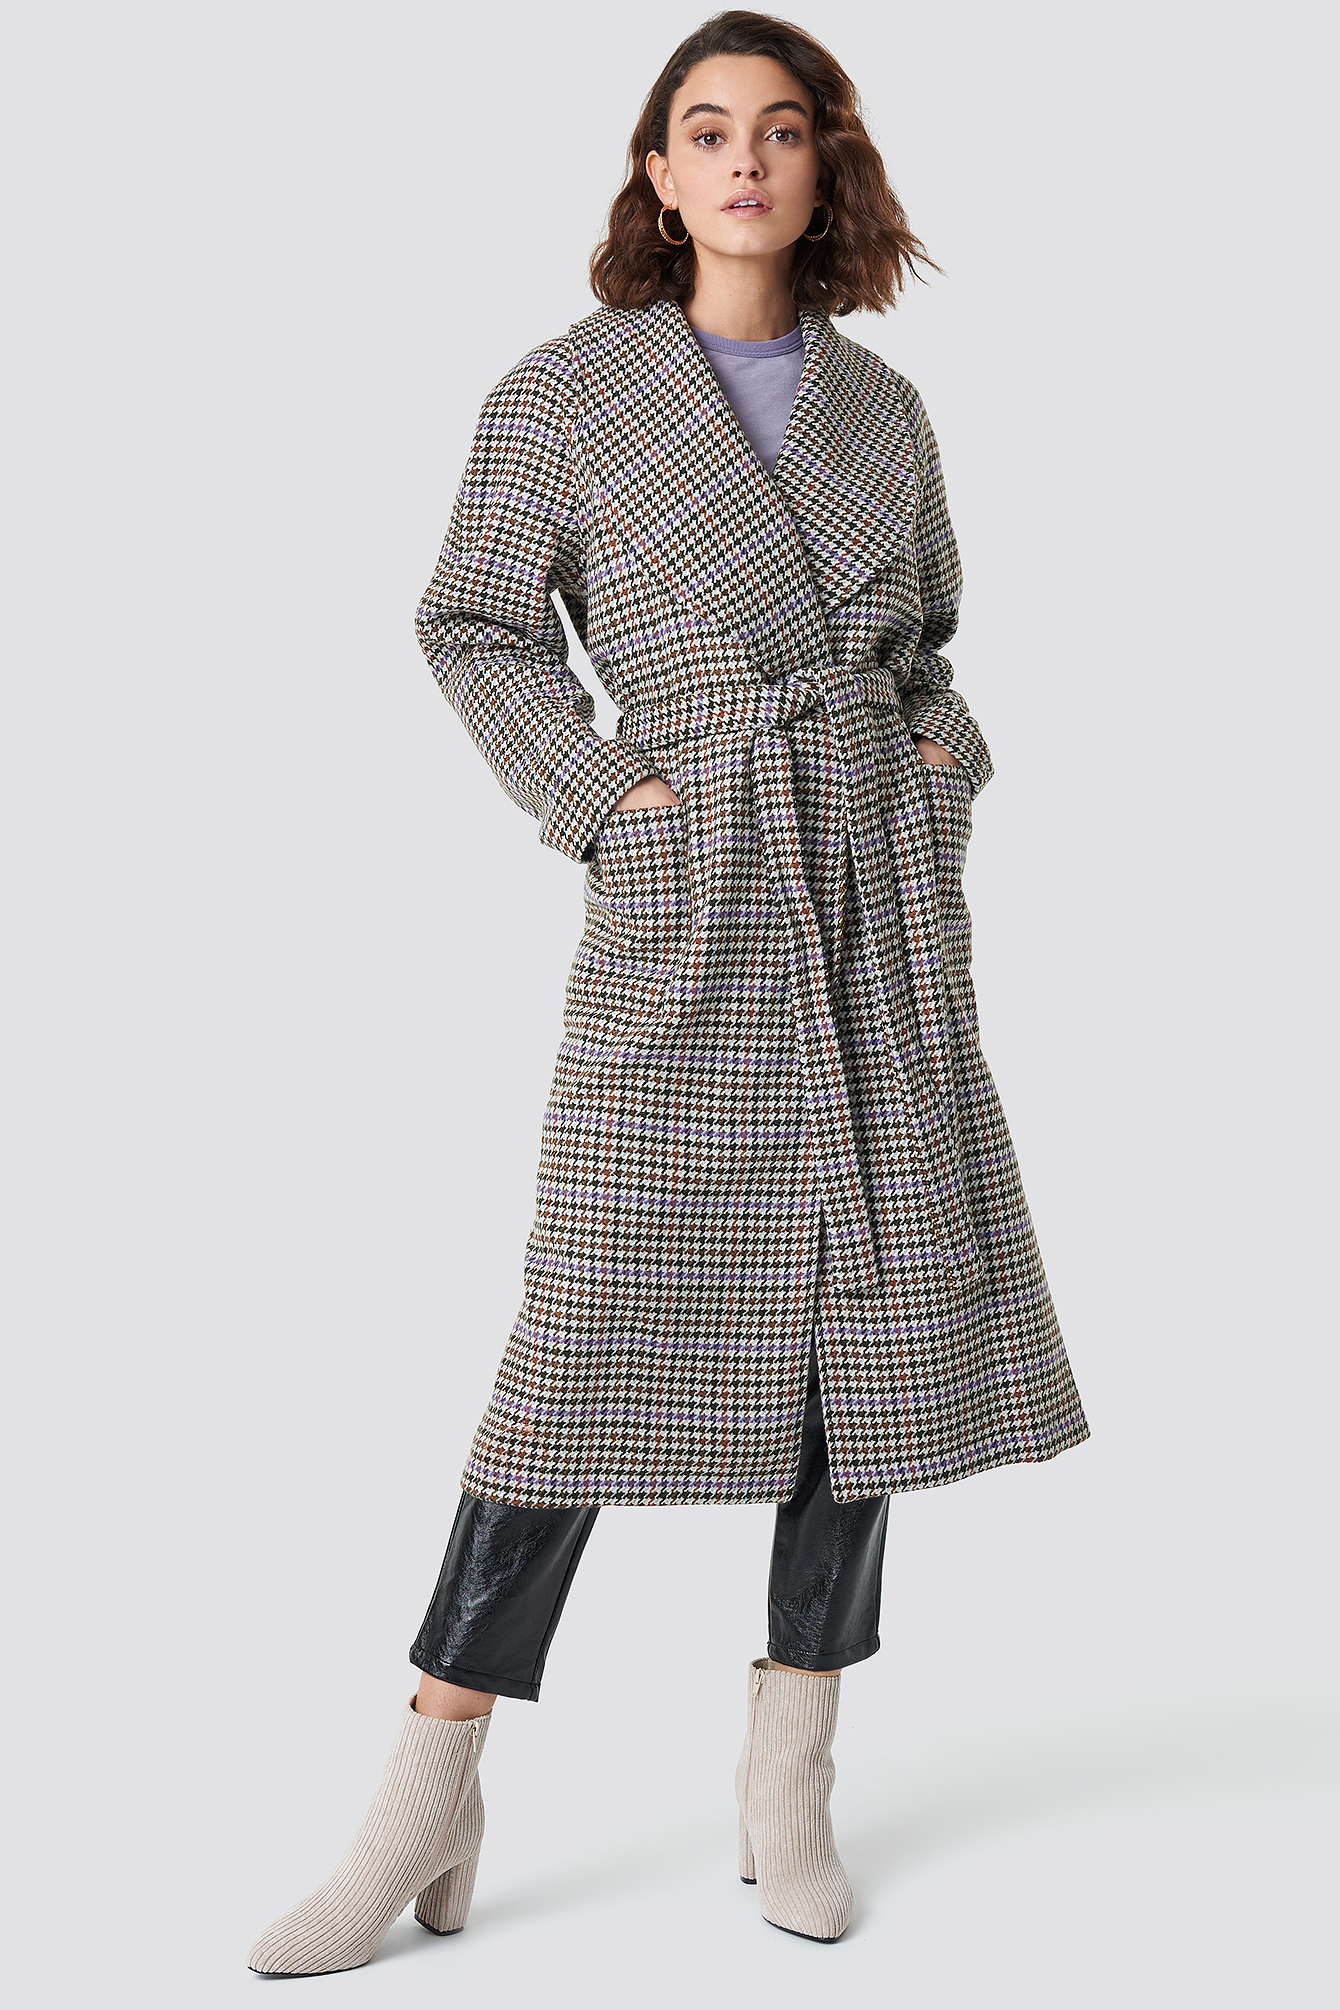 Welle Check Coat - Grey, Multicolor in Gray from NA-KD